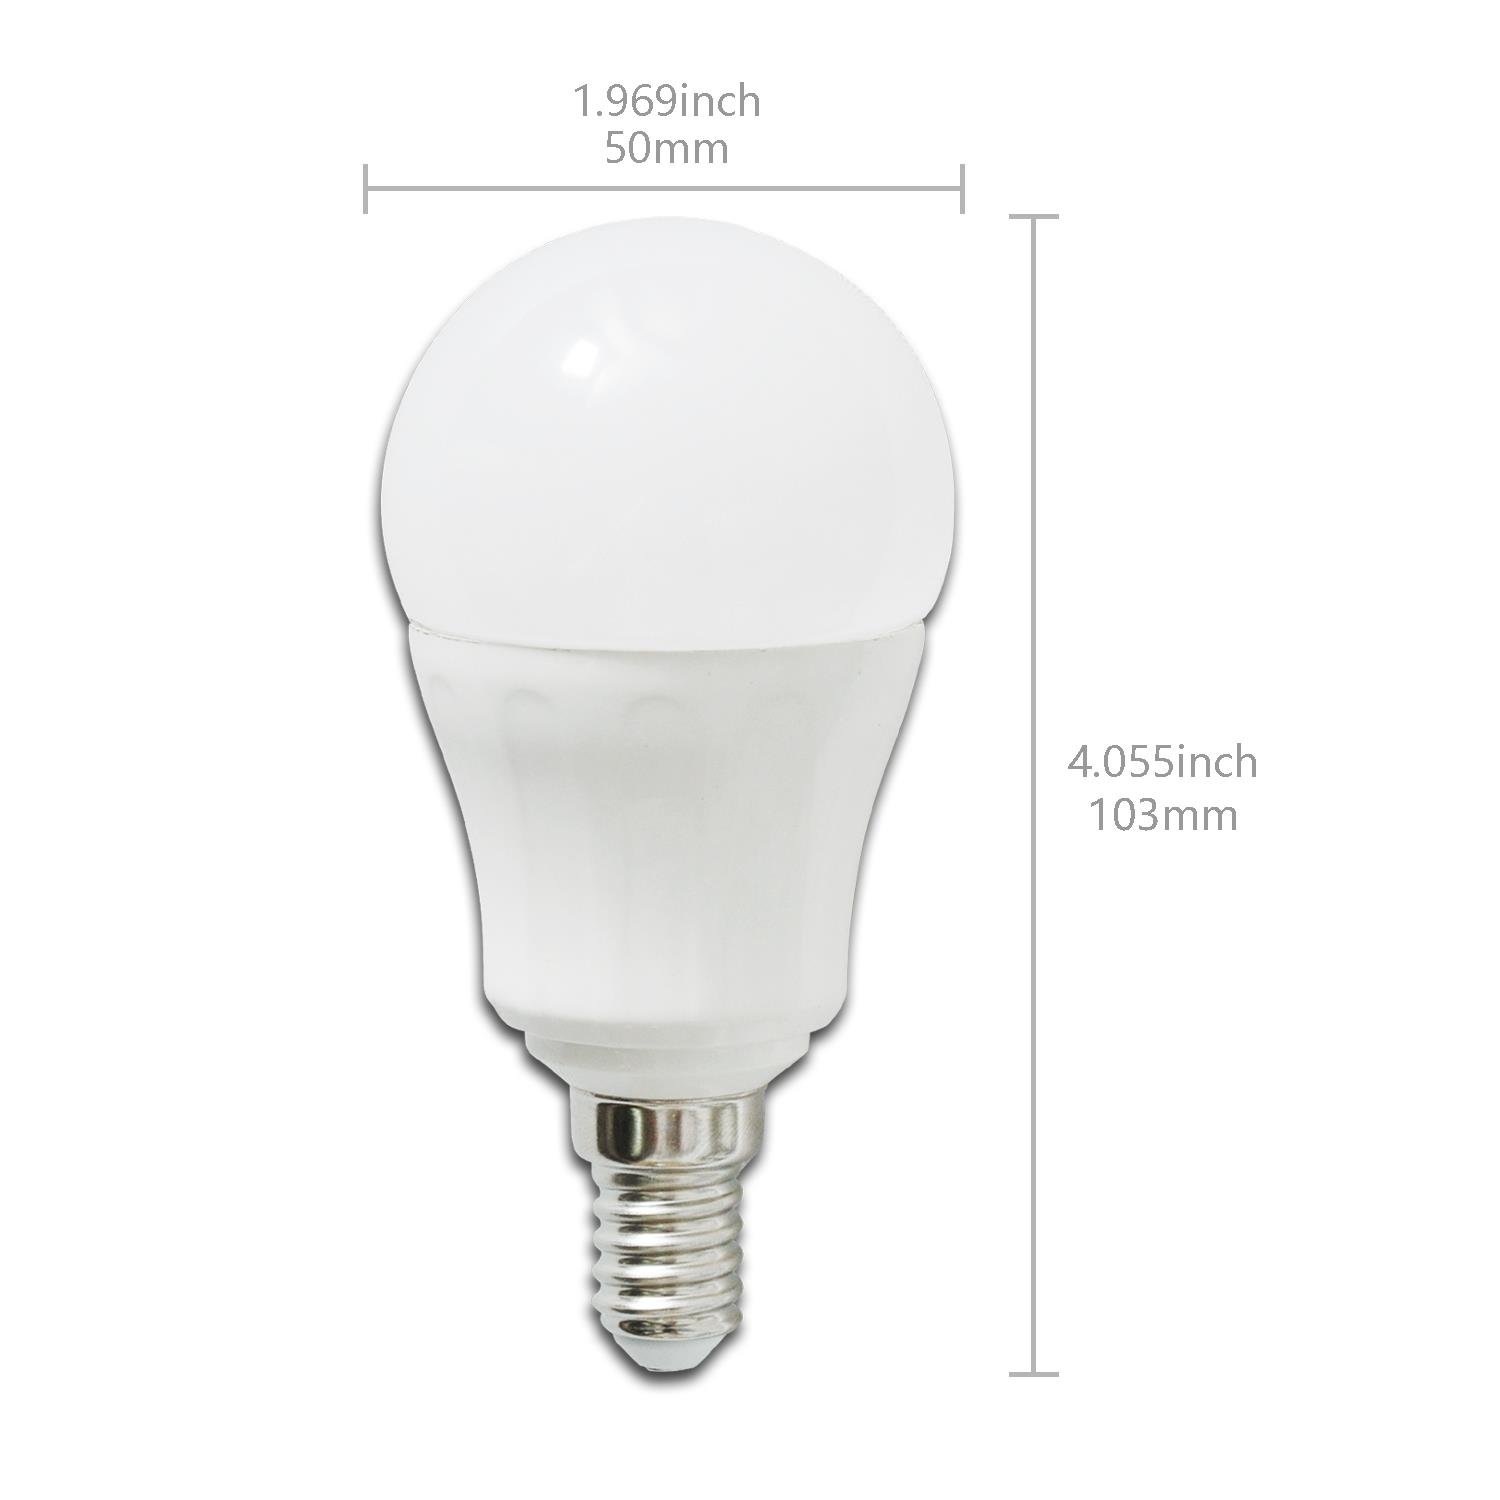 Aigostar - Bombilla LED A5 P45, E14, 7 W equivalente a 50 W, 3000K, 490 lúmenes, no regulable -Pack de 5: Amazon.es: Hogar